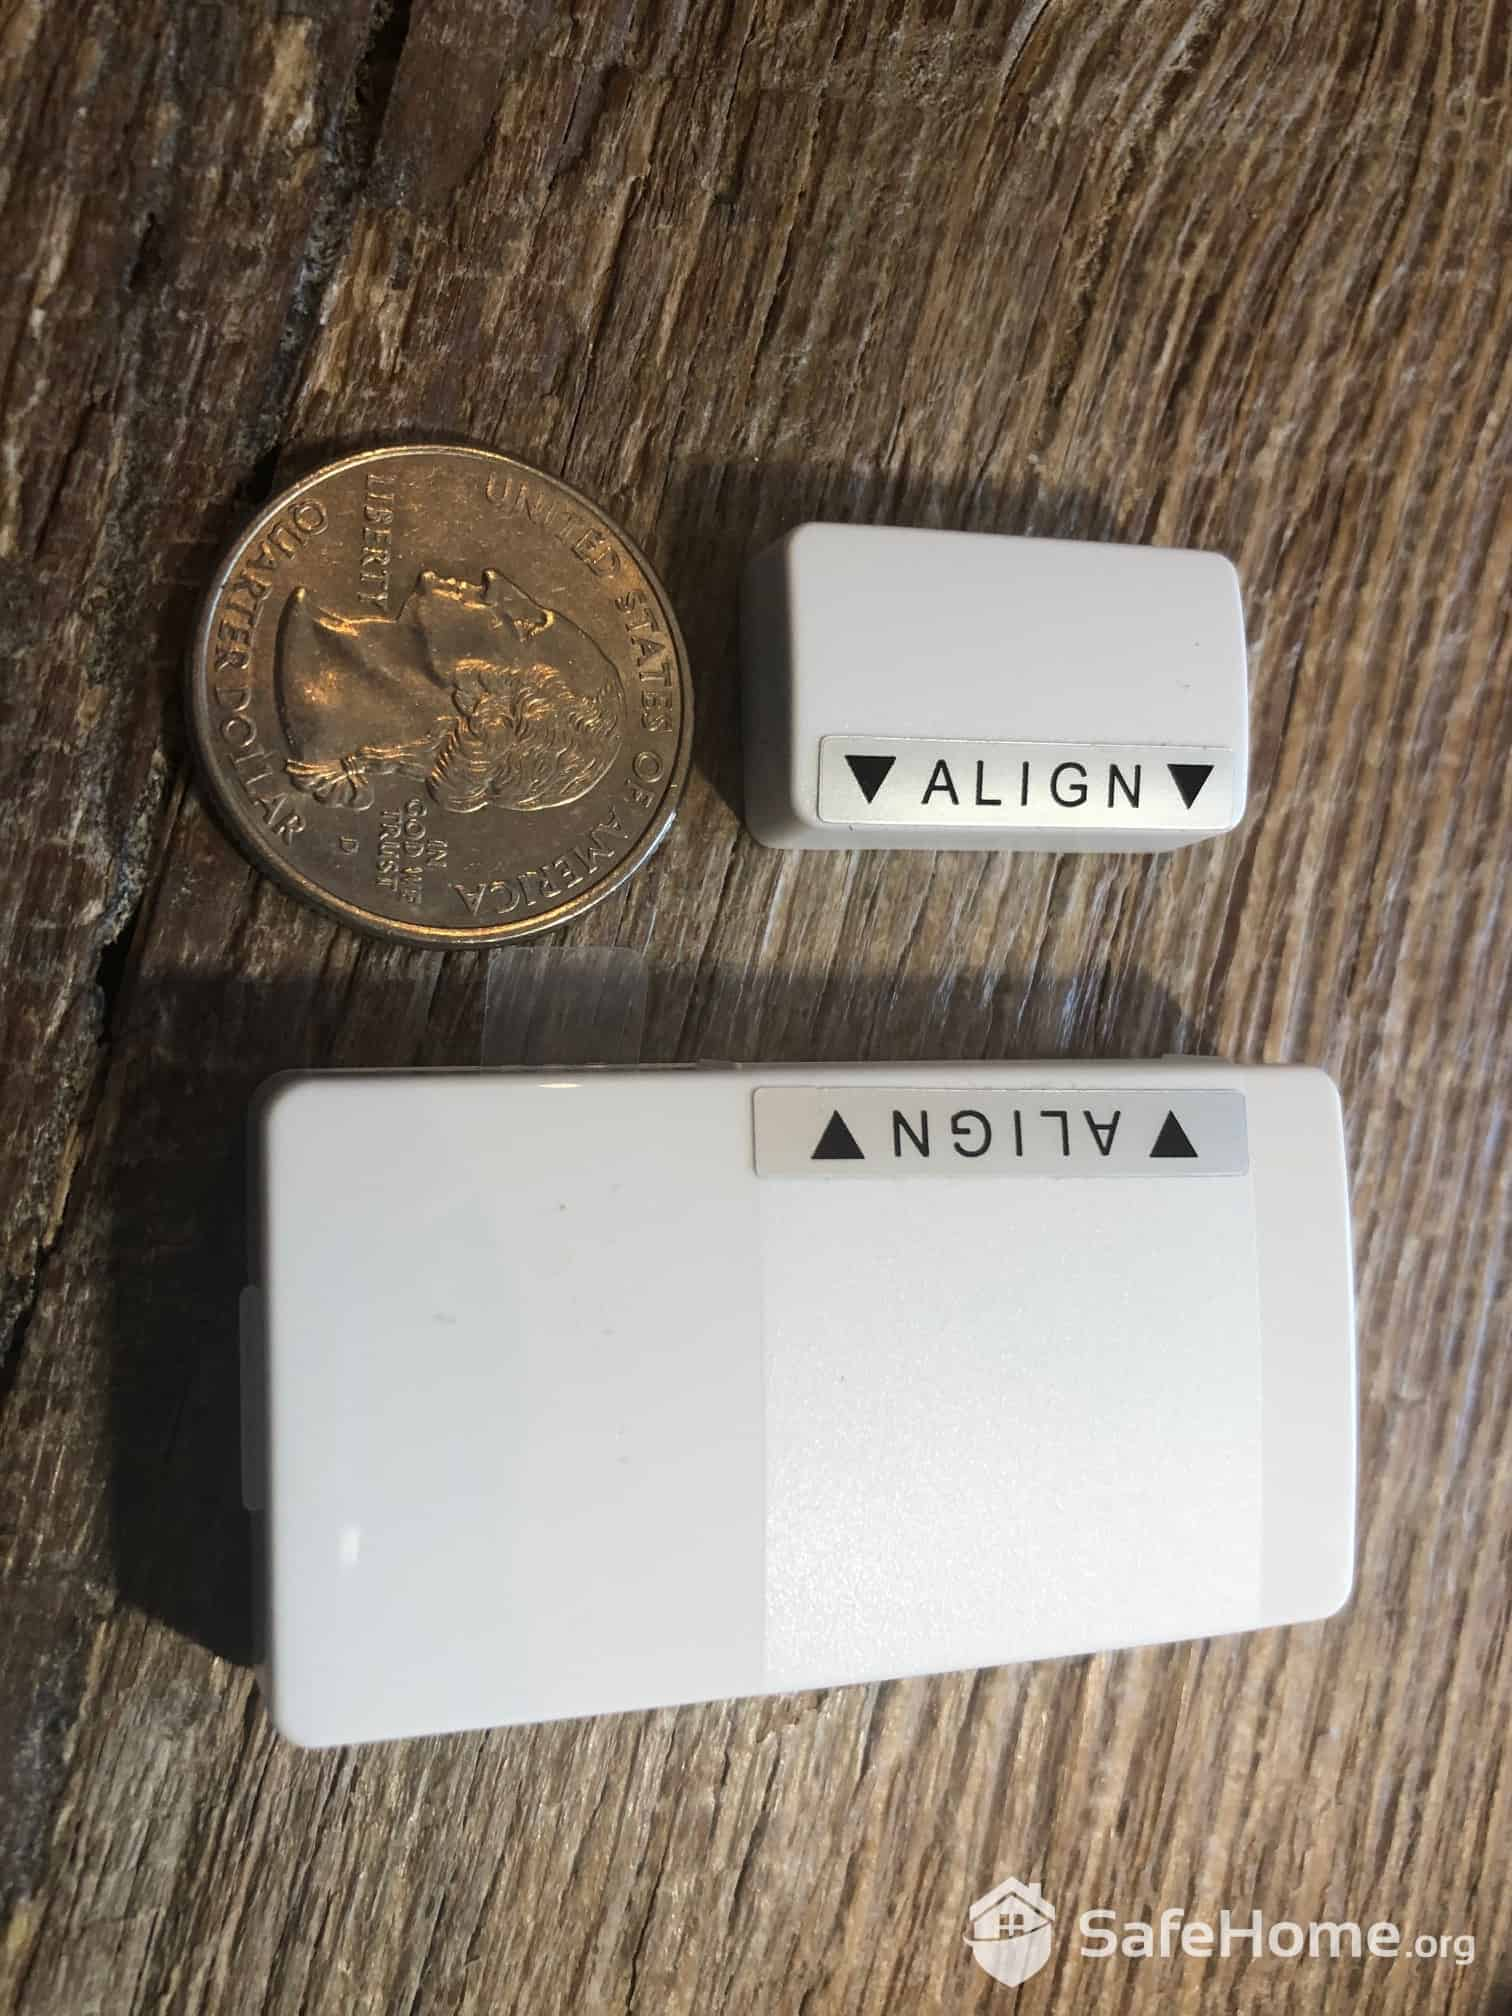 abode Door/Window Sensor Compared to a Quarter